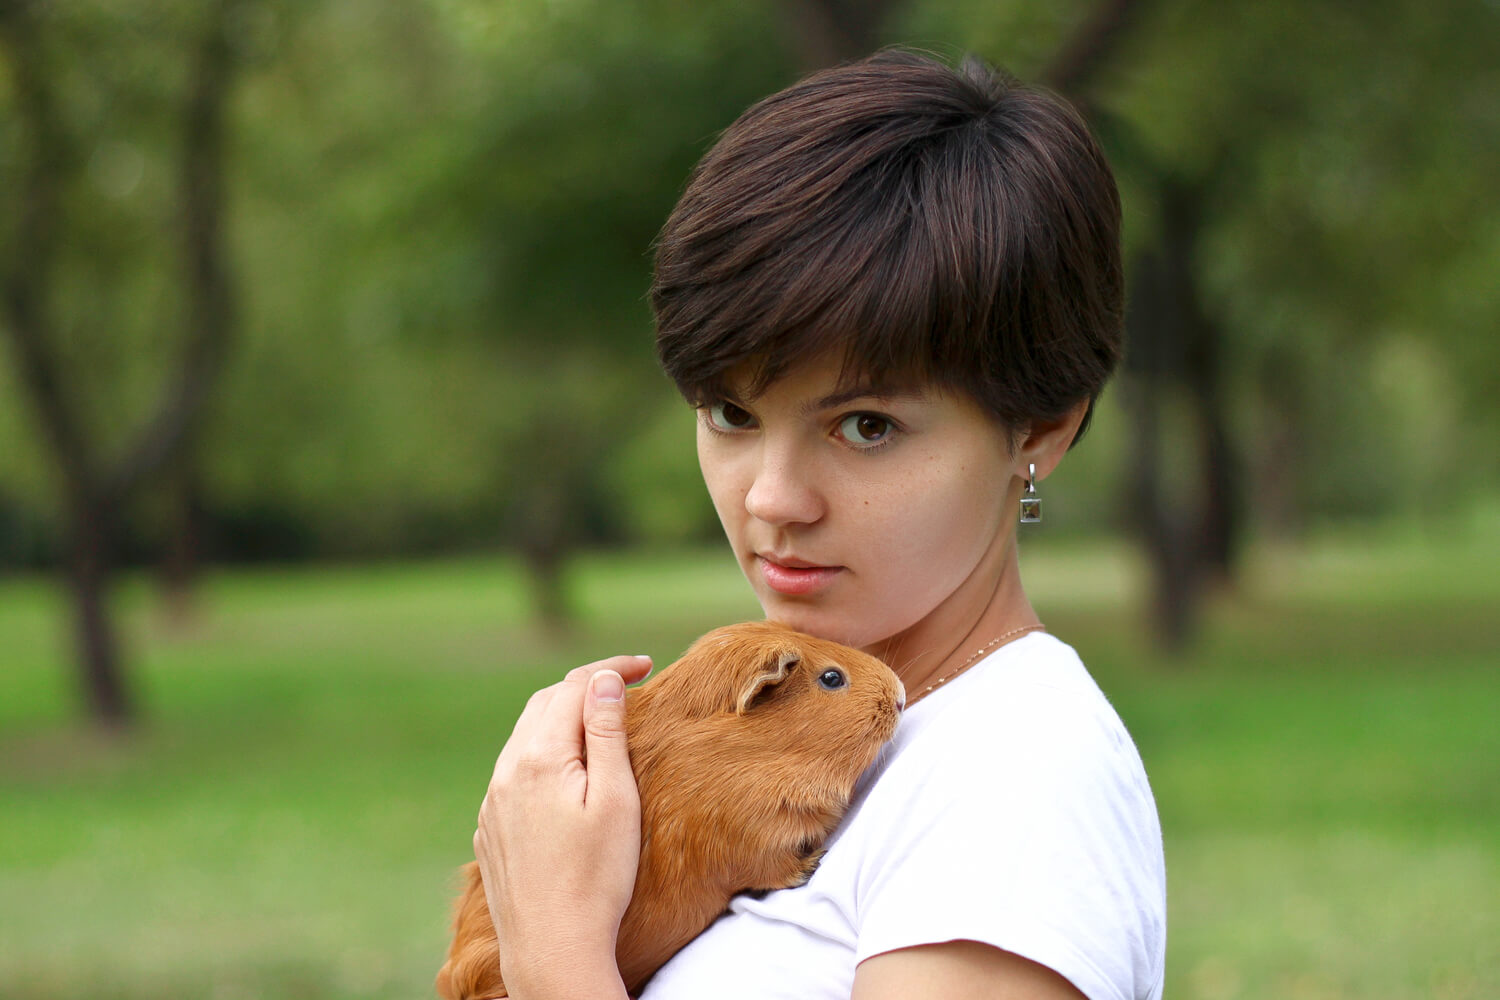 girl with short pixie hairstyle